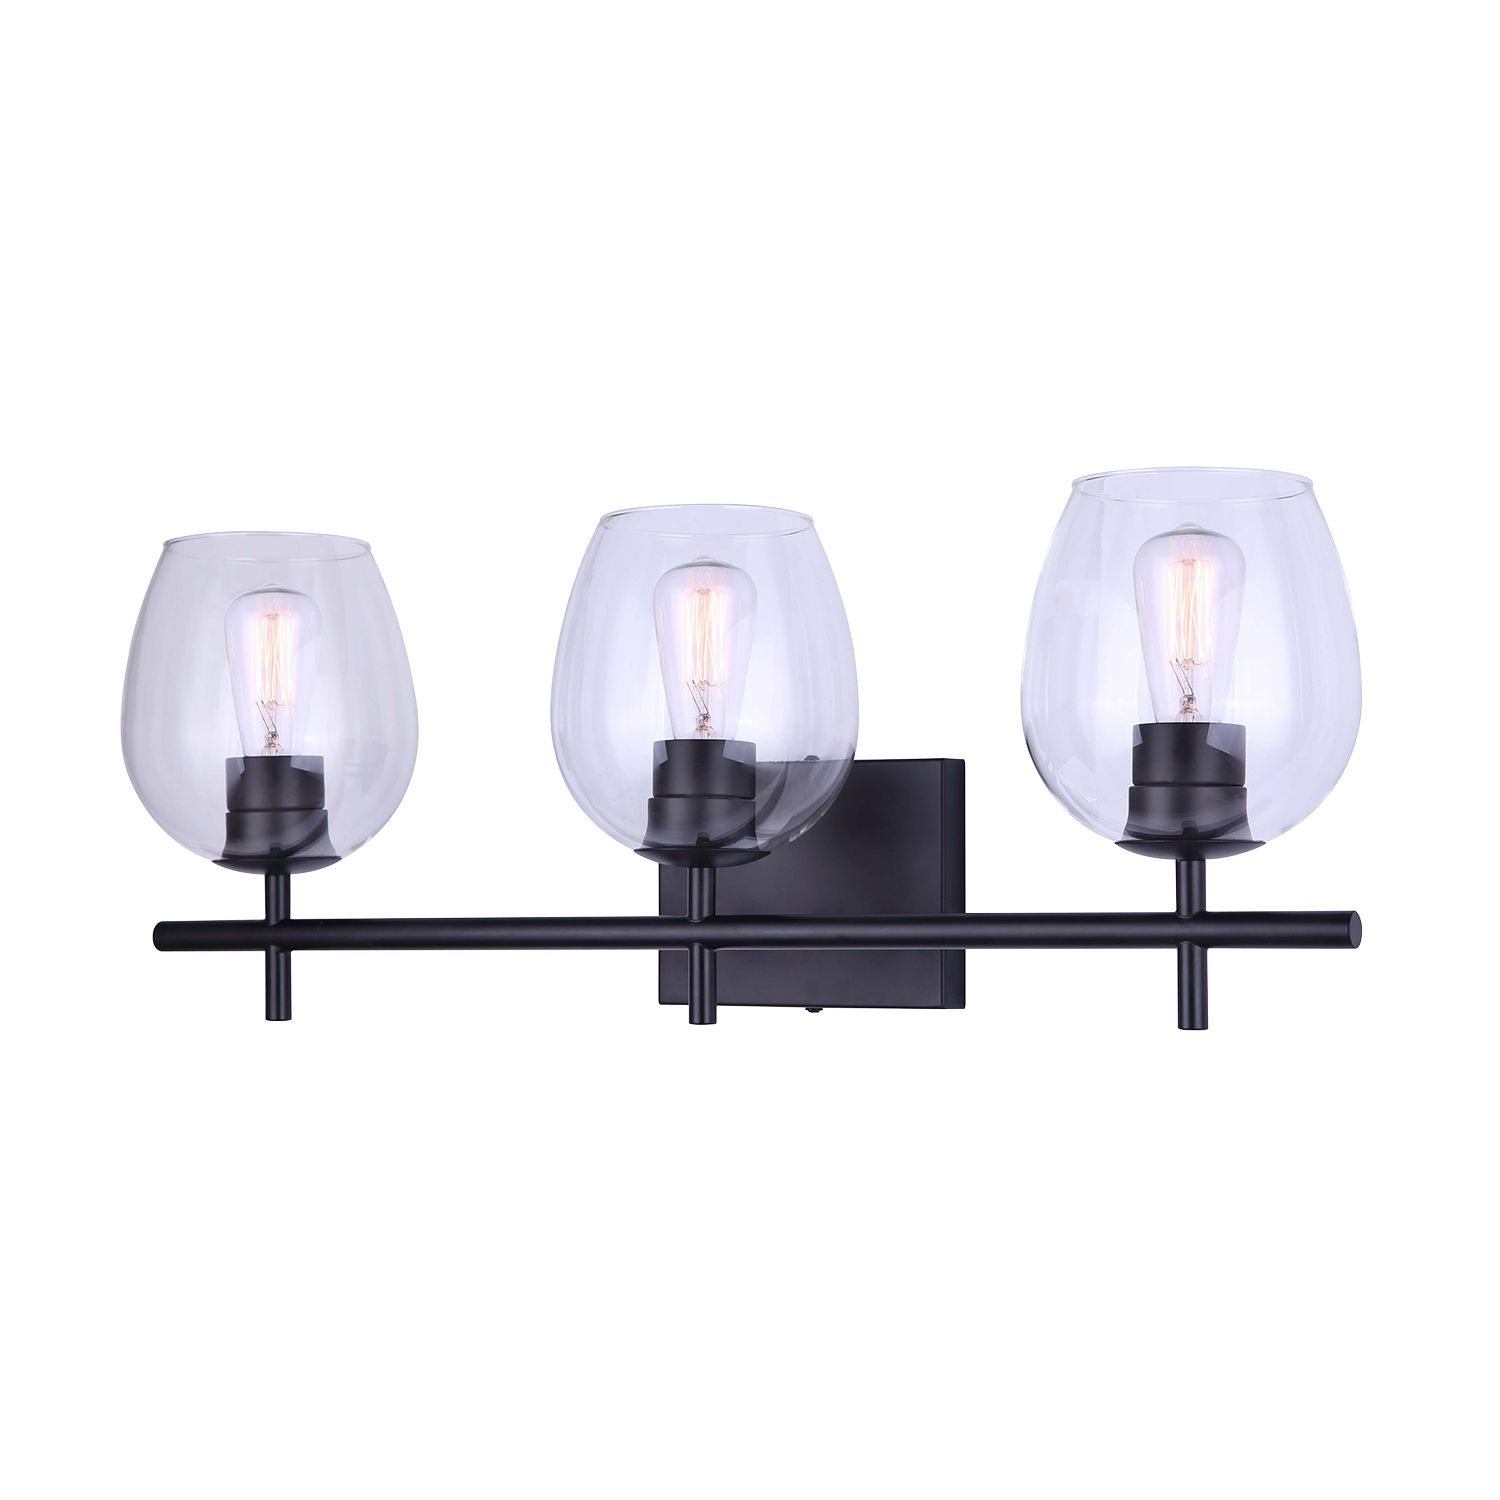 Cain 3 Light Matte Black Vanity Light Vanity Lighting Kent Building Supplies